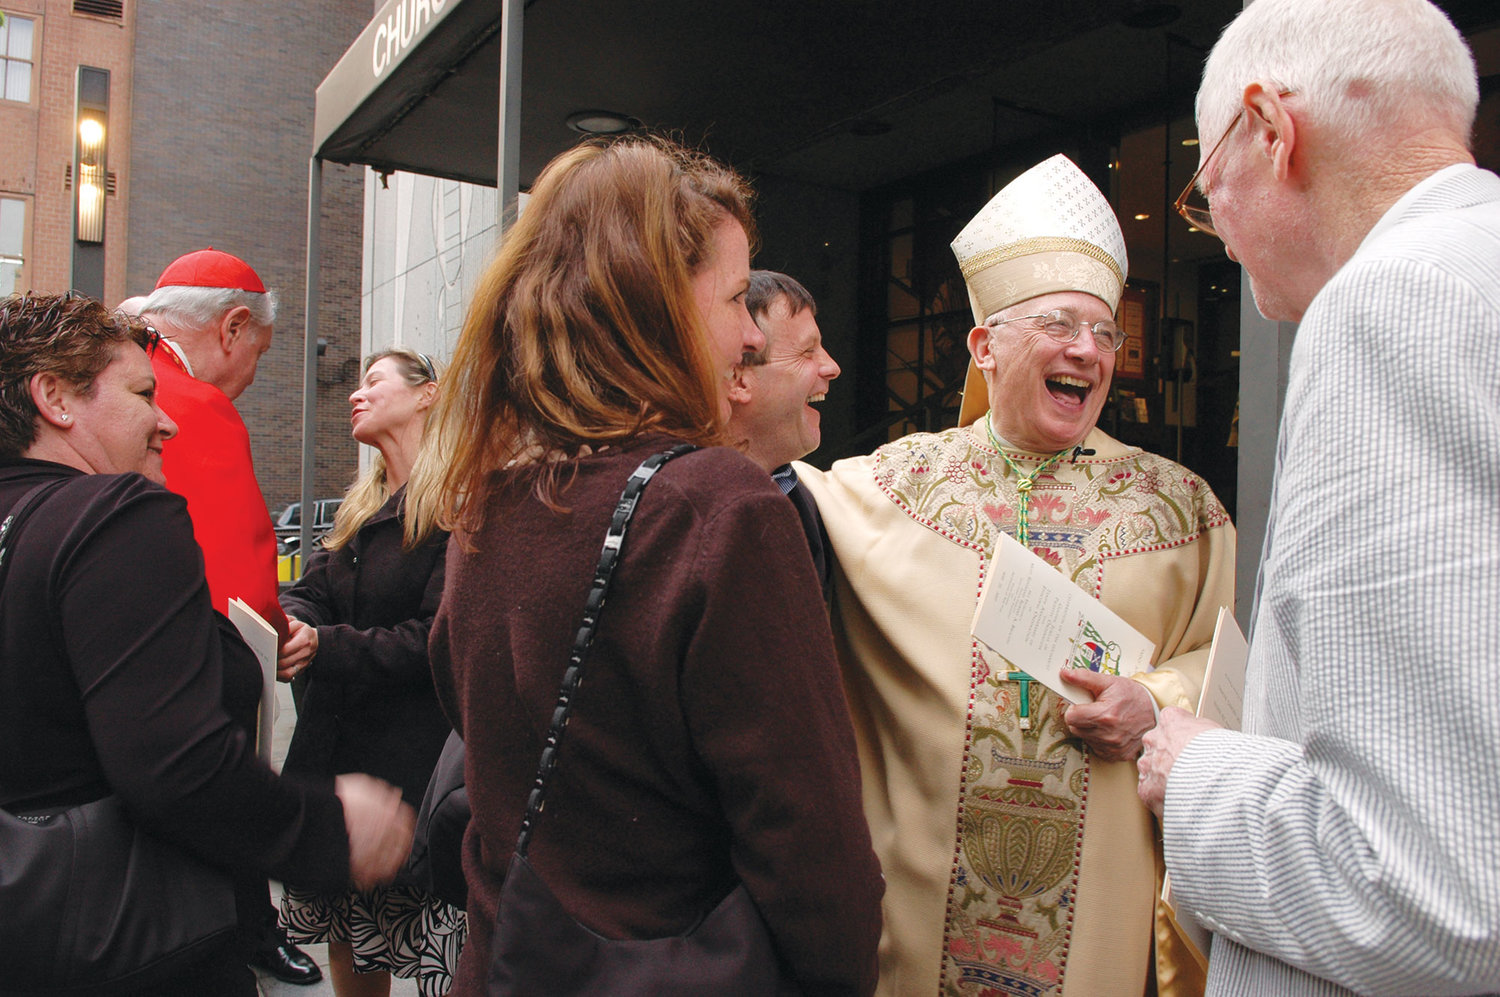 The bishop greeted friends and parishioners after a Mass at St. John the Evangelist Church in May 2007 celebrating his 50th anniversary as a priest and 10th anniversary as a bishop.